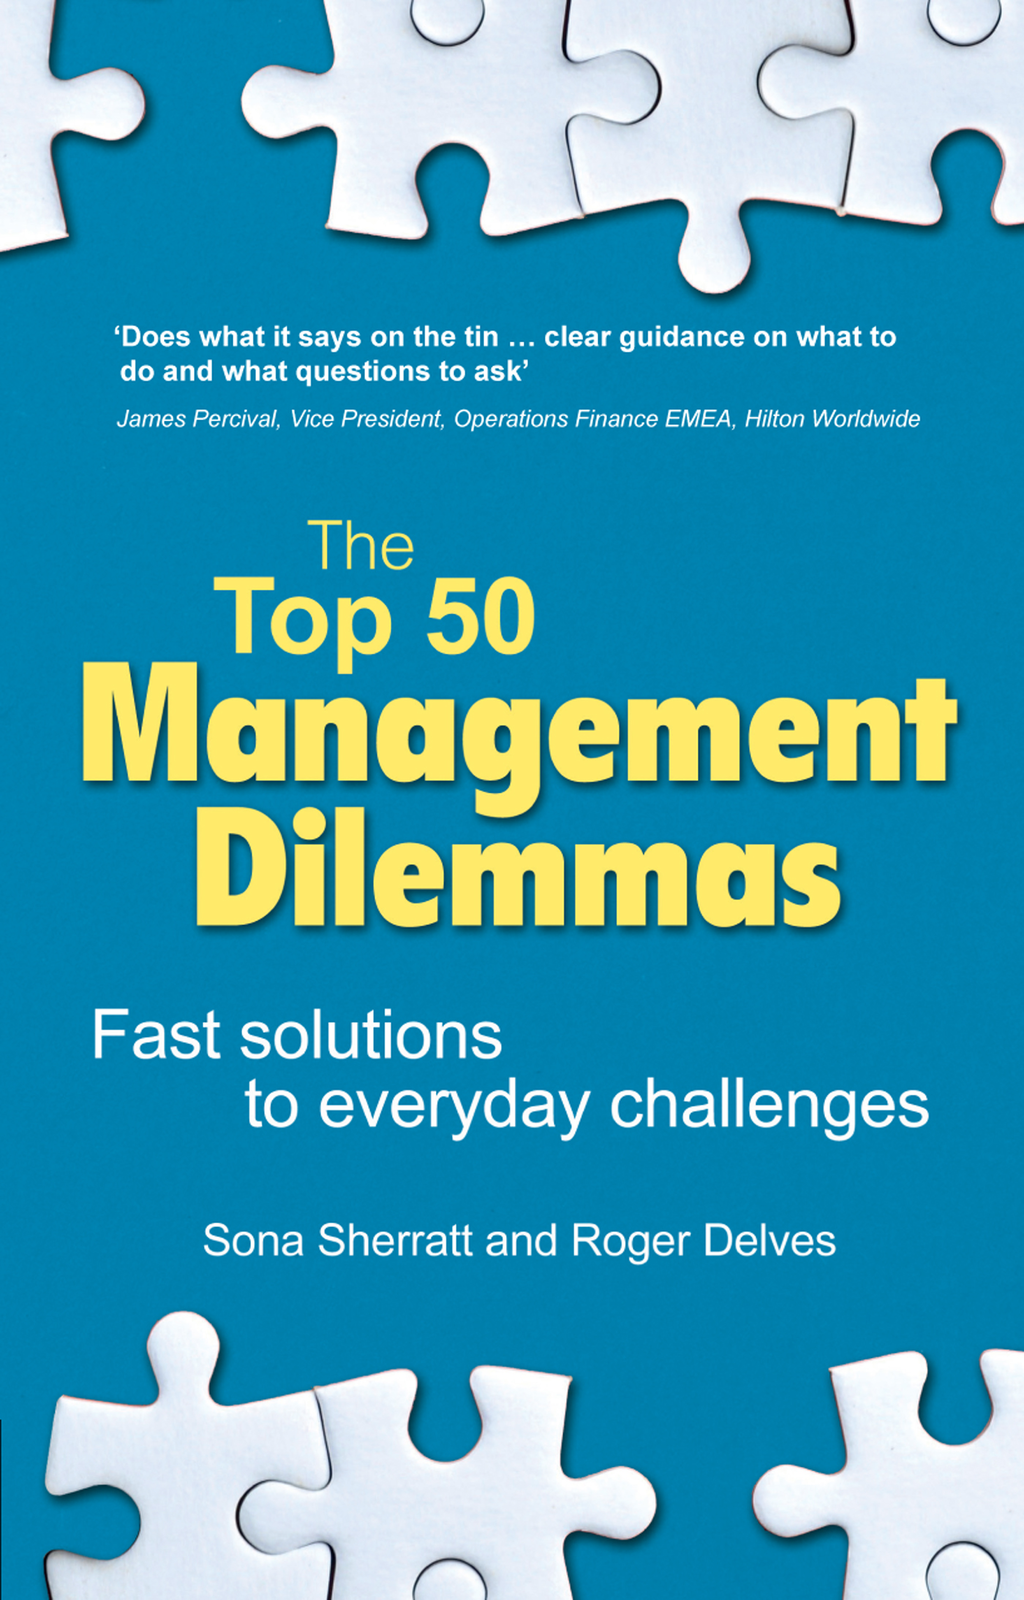 The Top 50 Management Dilemmas Fast solutions to everyday challenges